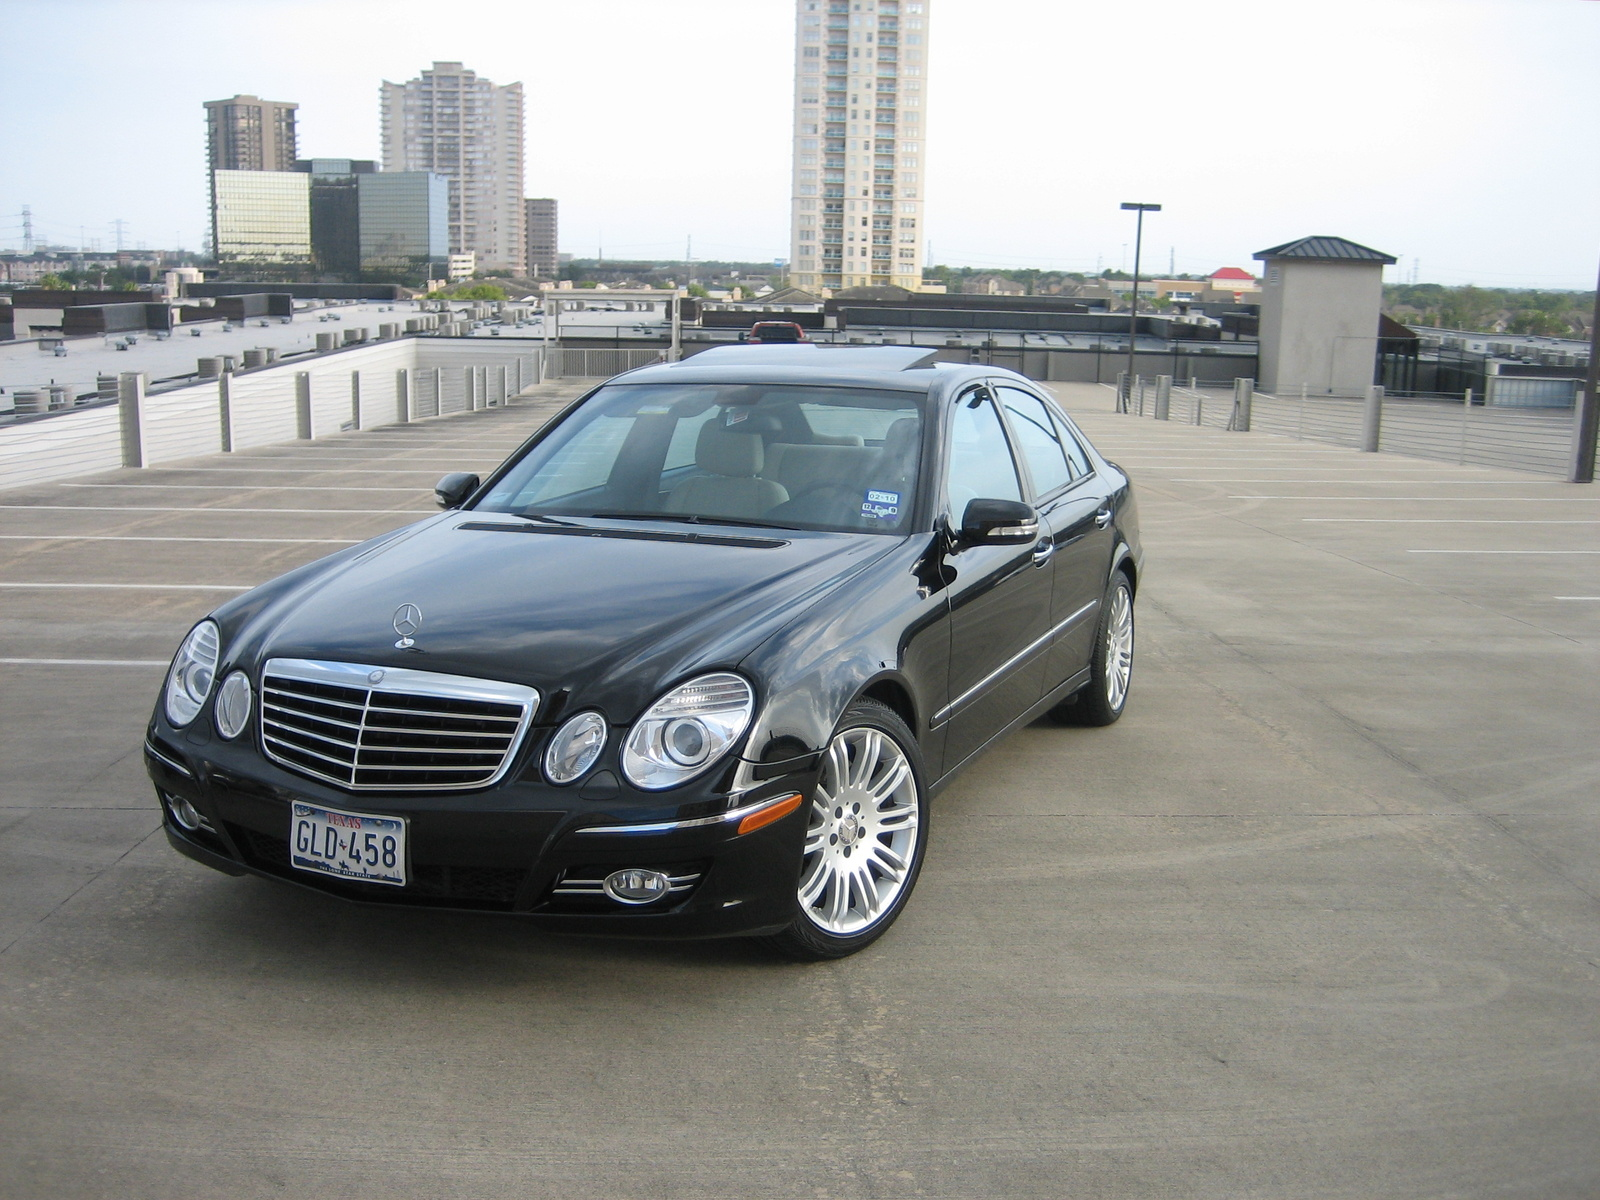 2007 mercedes benz e class pictures cargurus for 2007 mercedes benz e550